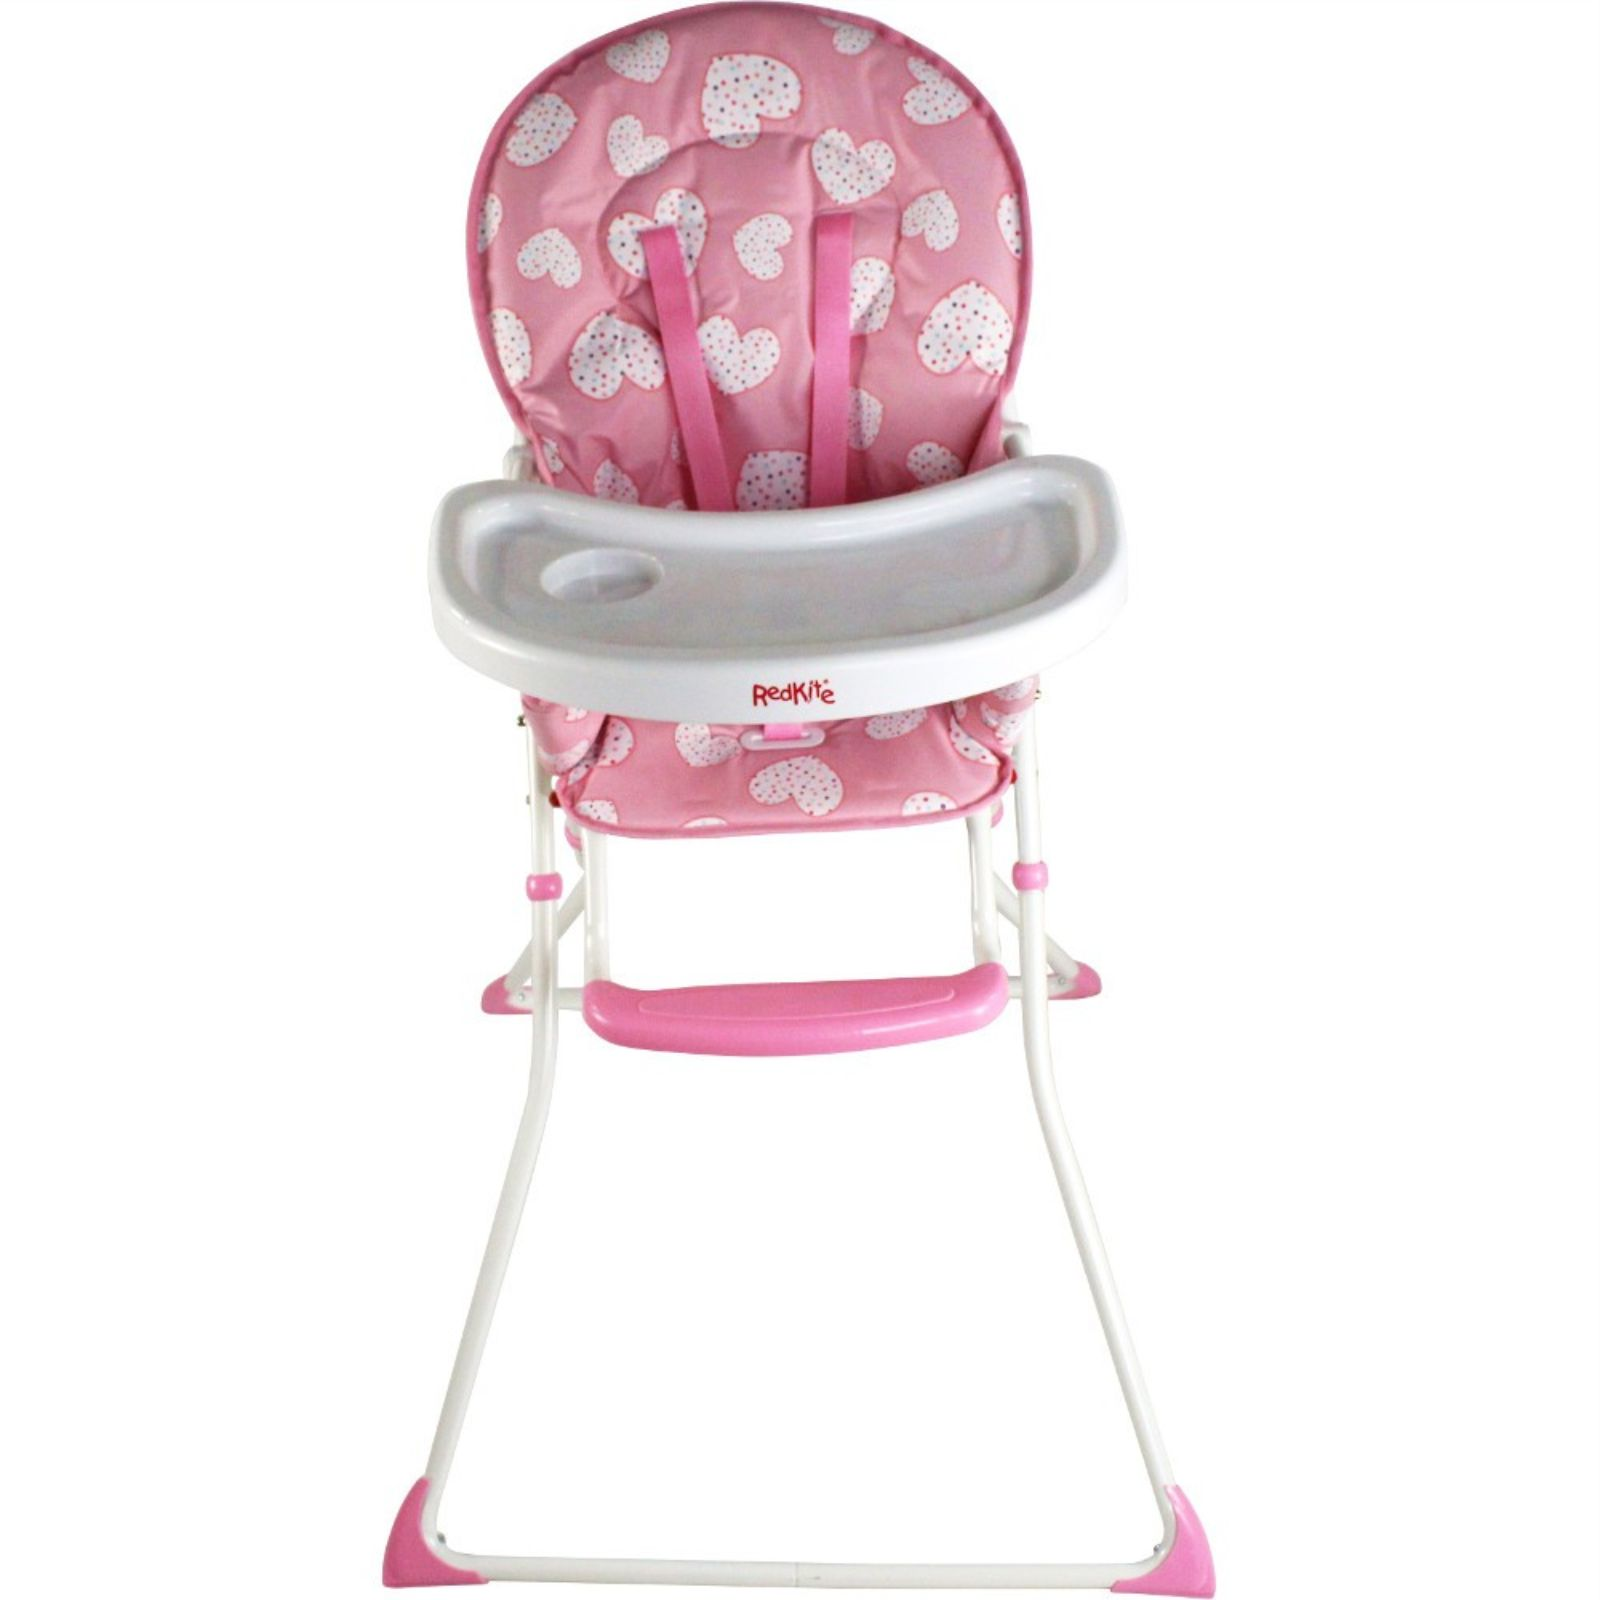 pink high chairs fold up rocking chair red kite feed me compact highchair pretty kitty buy at